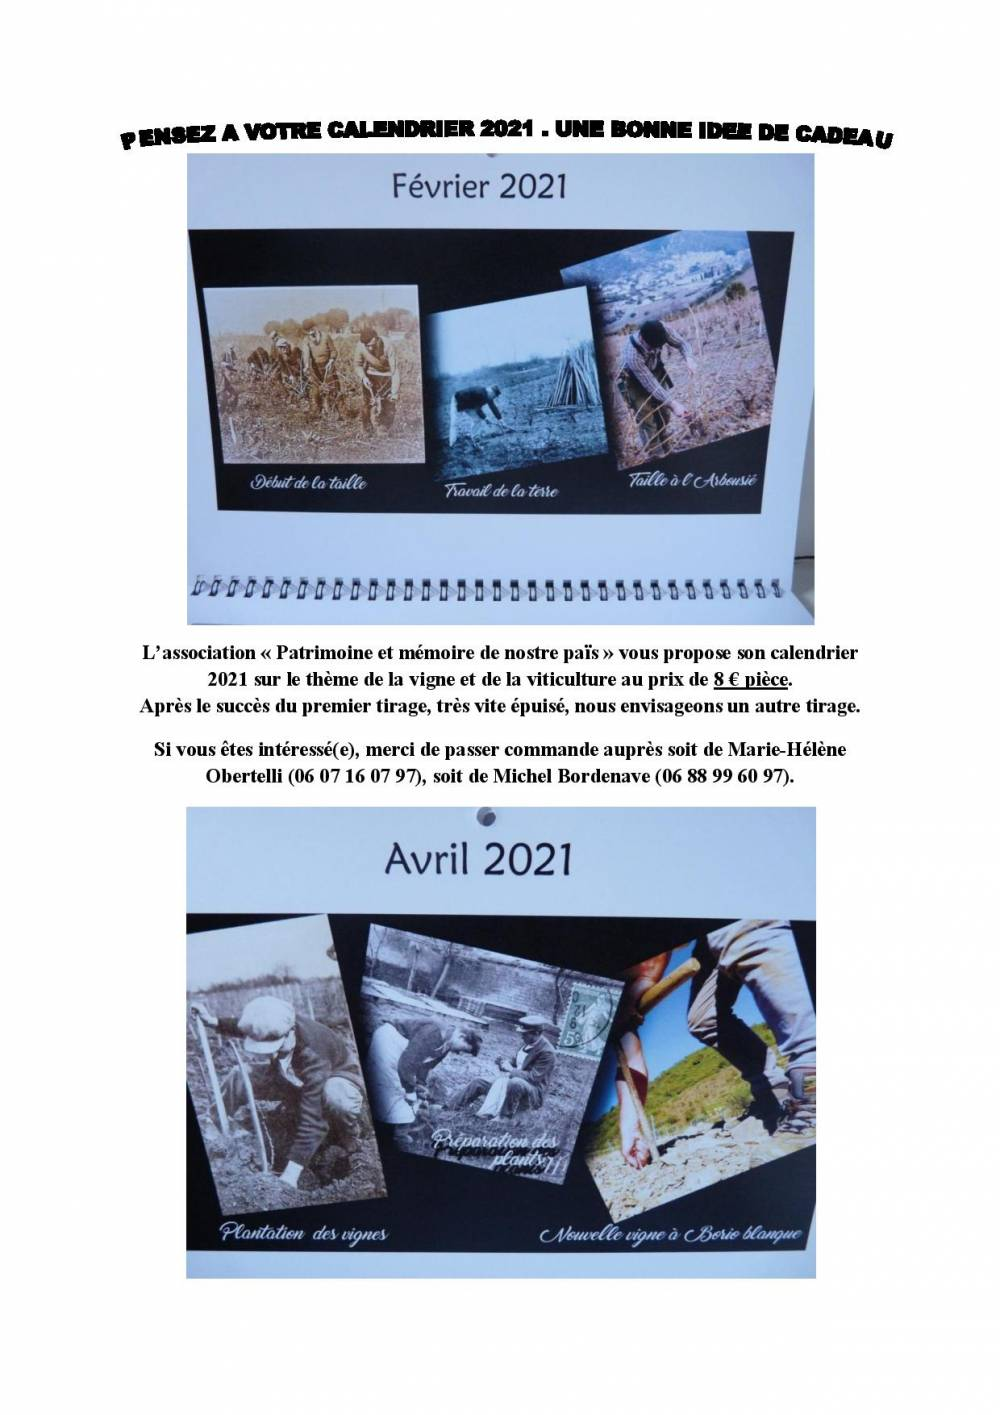 Vente calendriers 2021 page 001